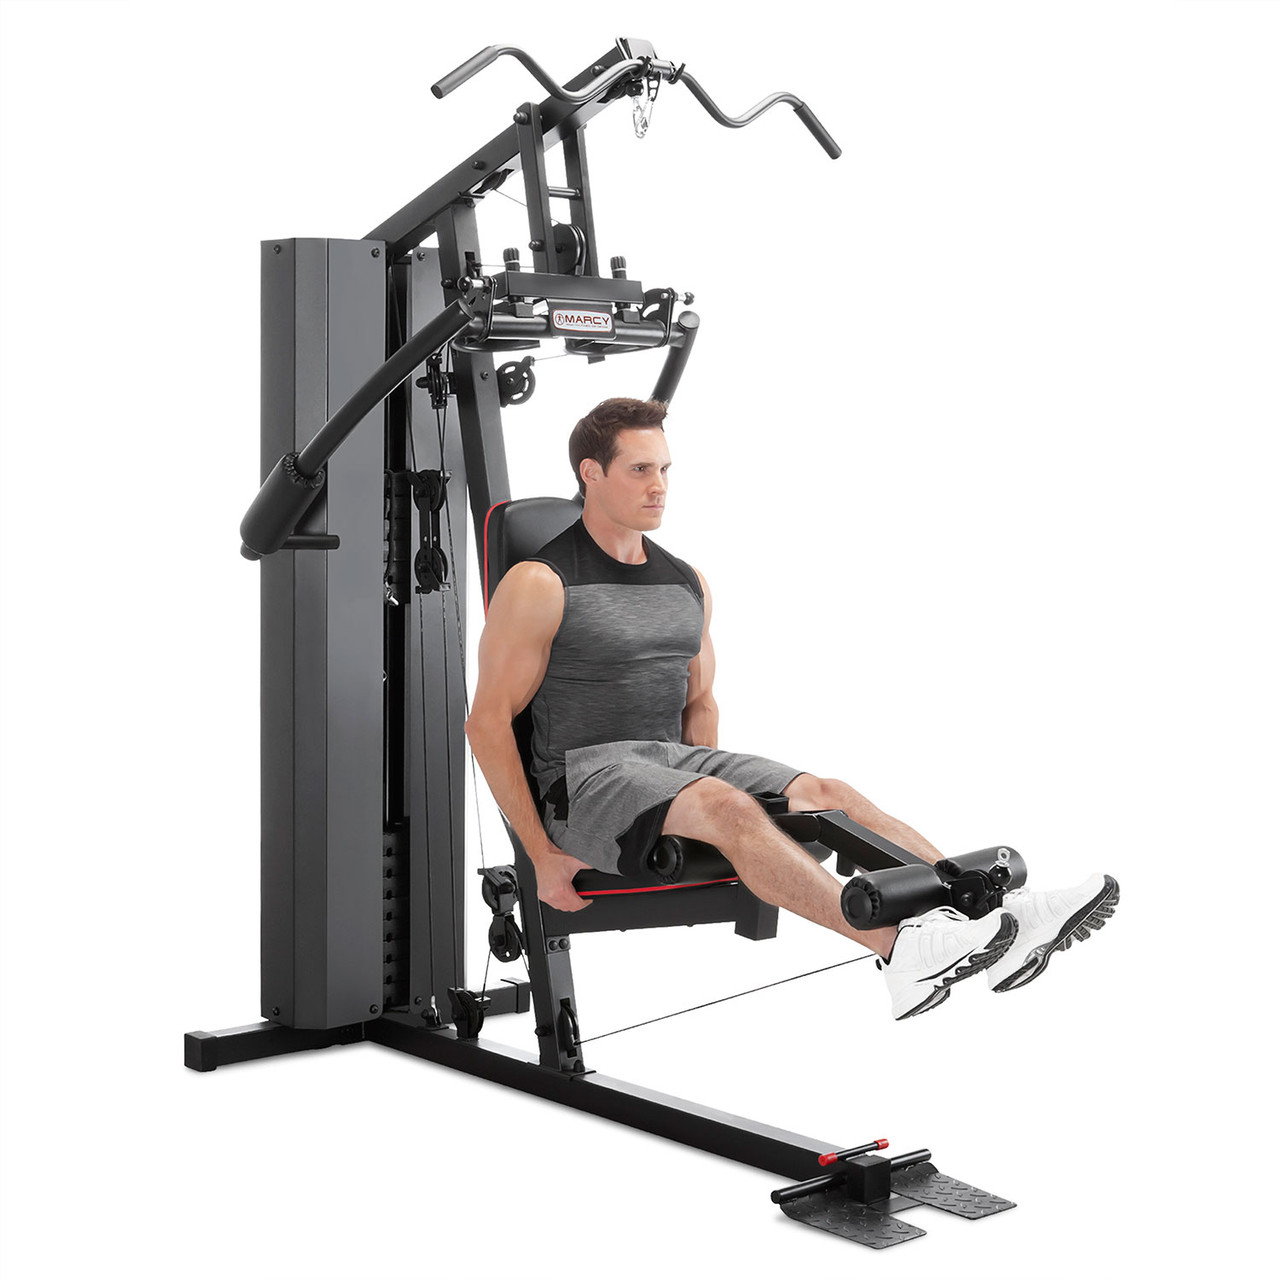 The Marcy Club 200 Lb Home Gym MKM-81010 has a leg developer to deliver a full body workout